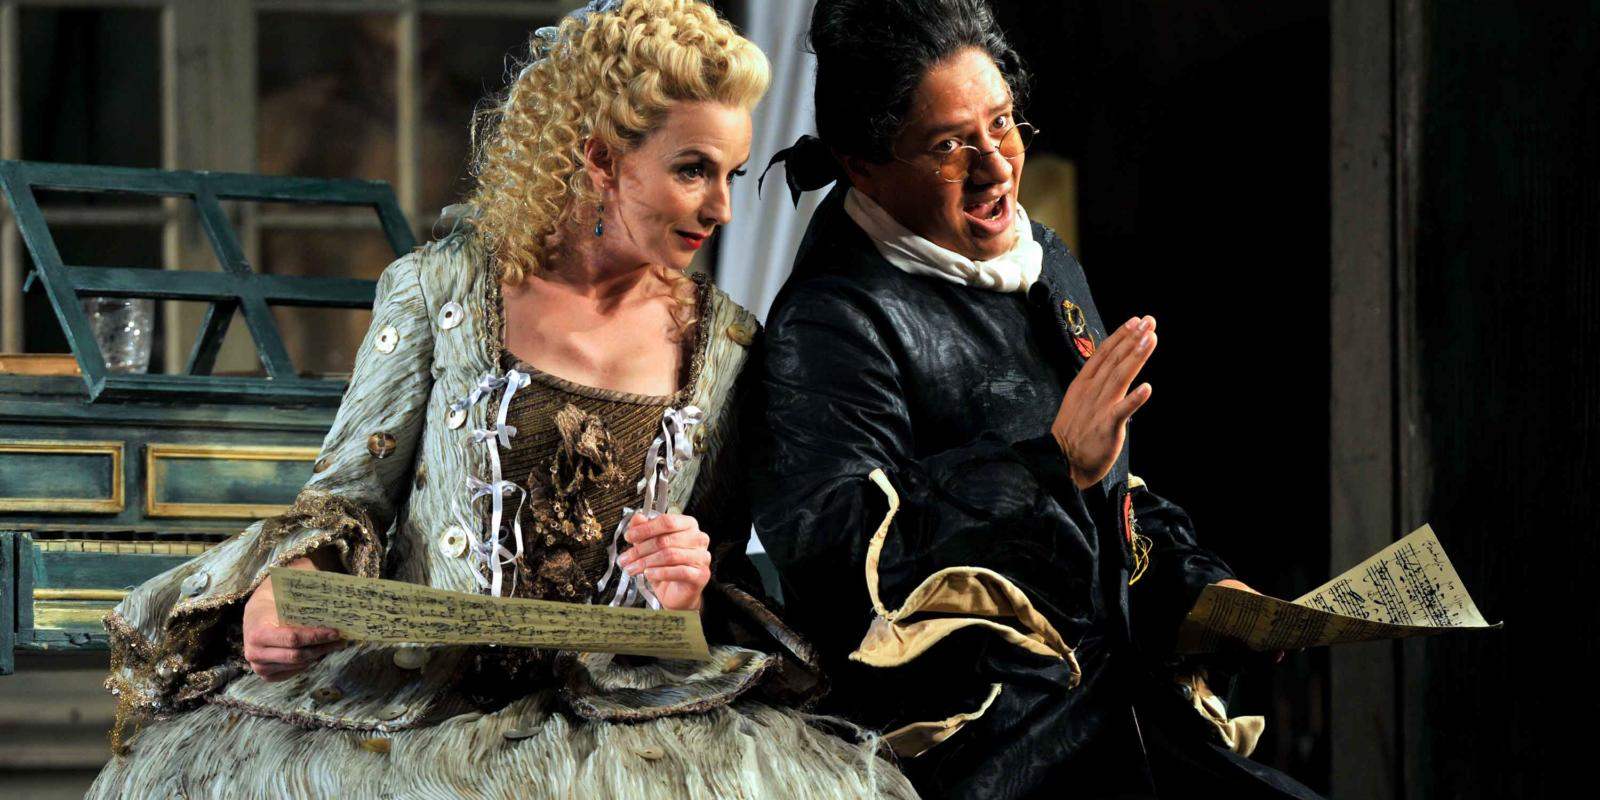 ENO The Barber of Seville: Sarah Tynan and Eleazar Rodriguez (c) Robbie Jack